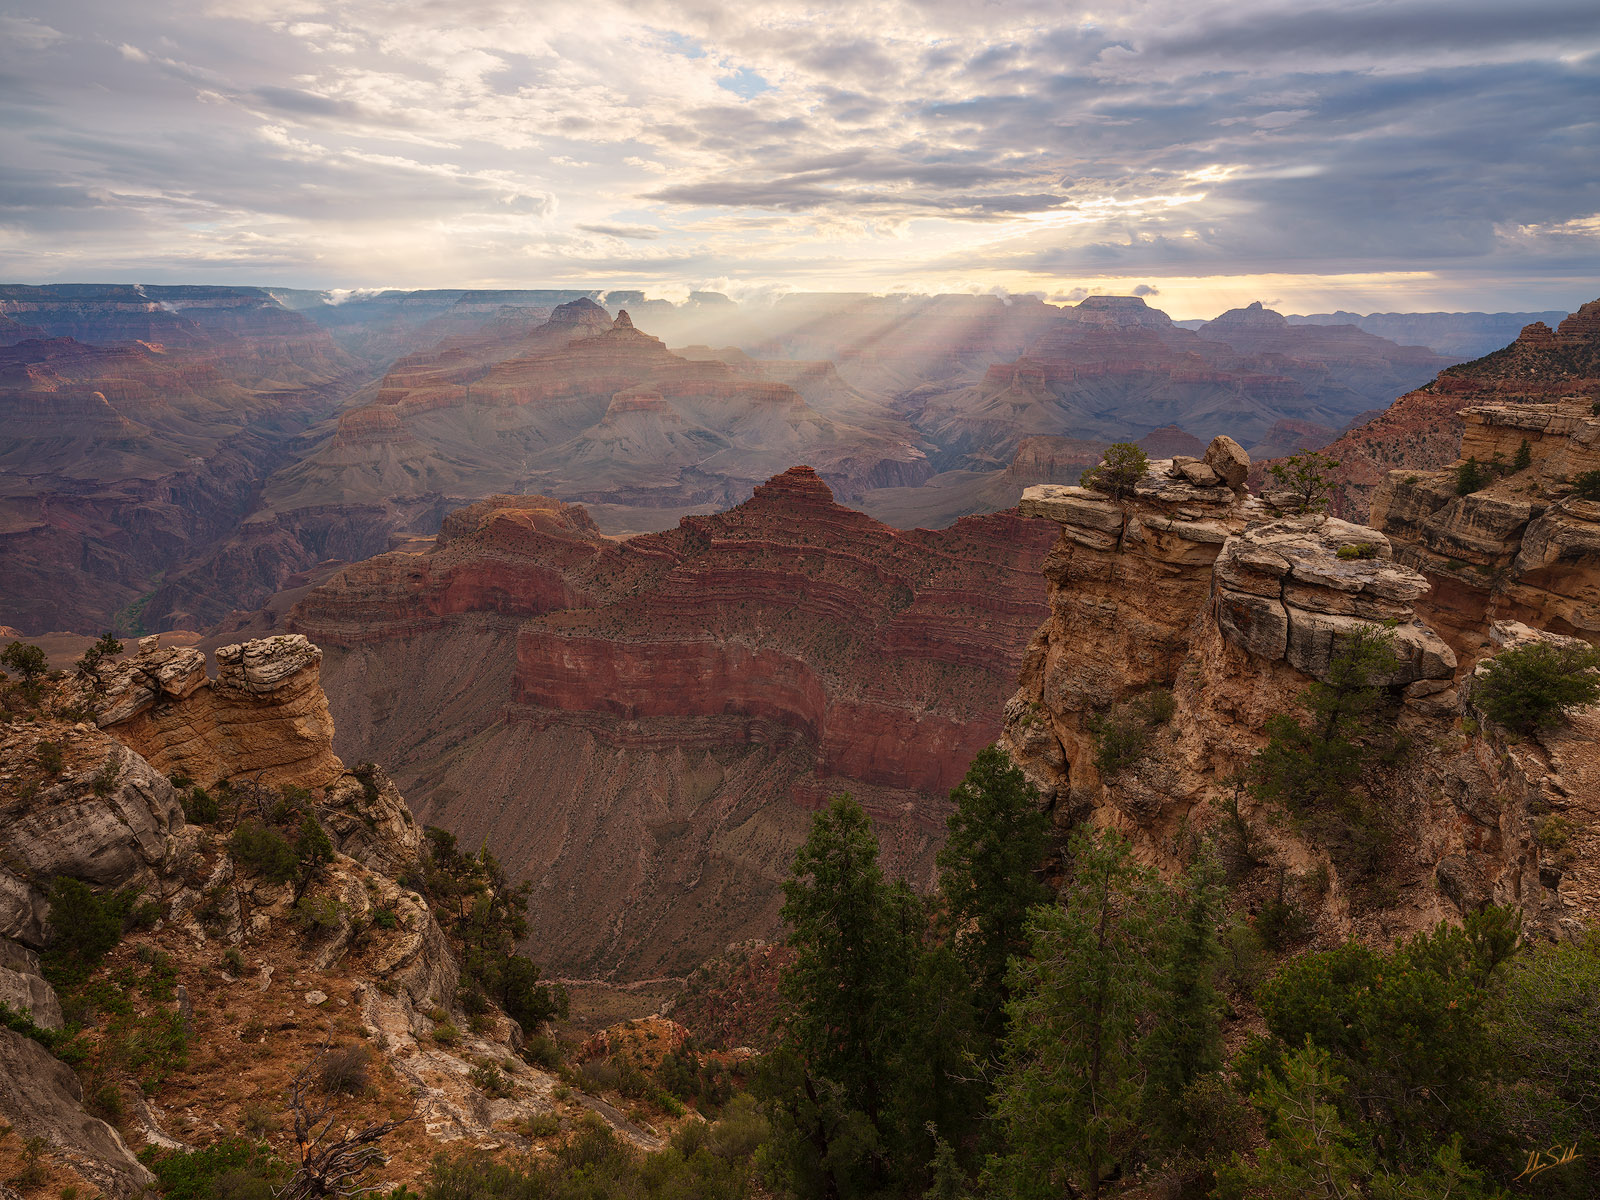 AZ, Arizona, Crepuscular, God Beams, Grand Canyon, Light, Mather Point, Monsoon, National Park, Rays, South Rim, Sunbeam, photo